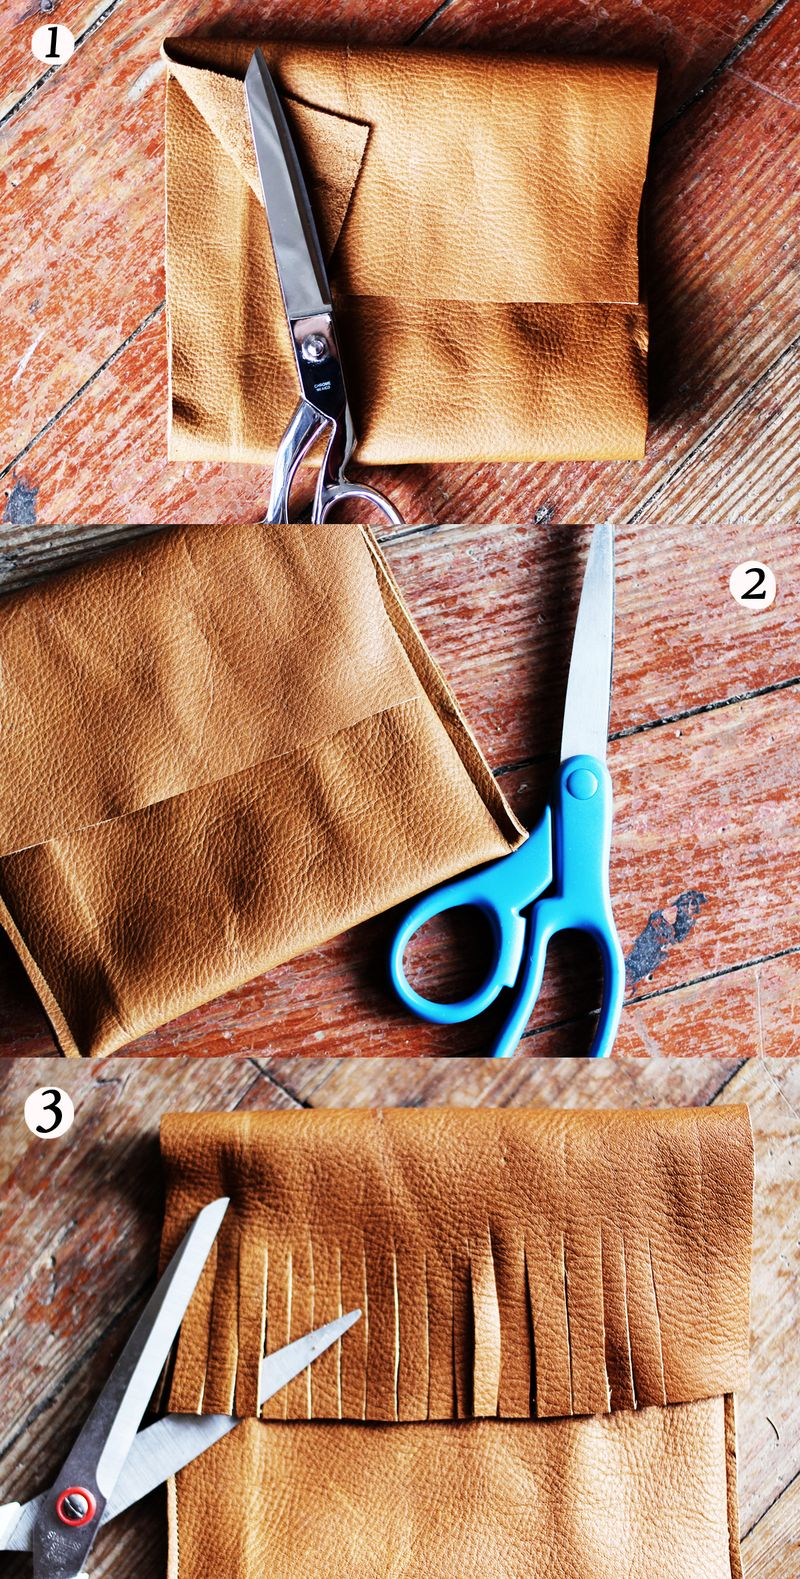 Leather pocket purse steps